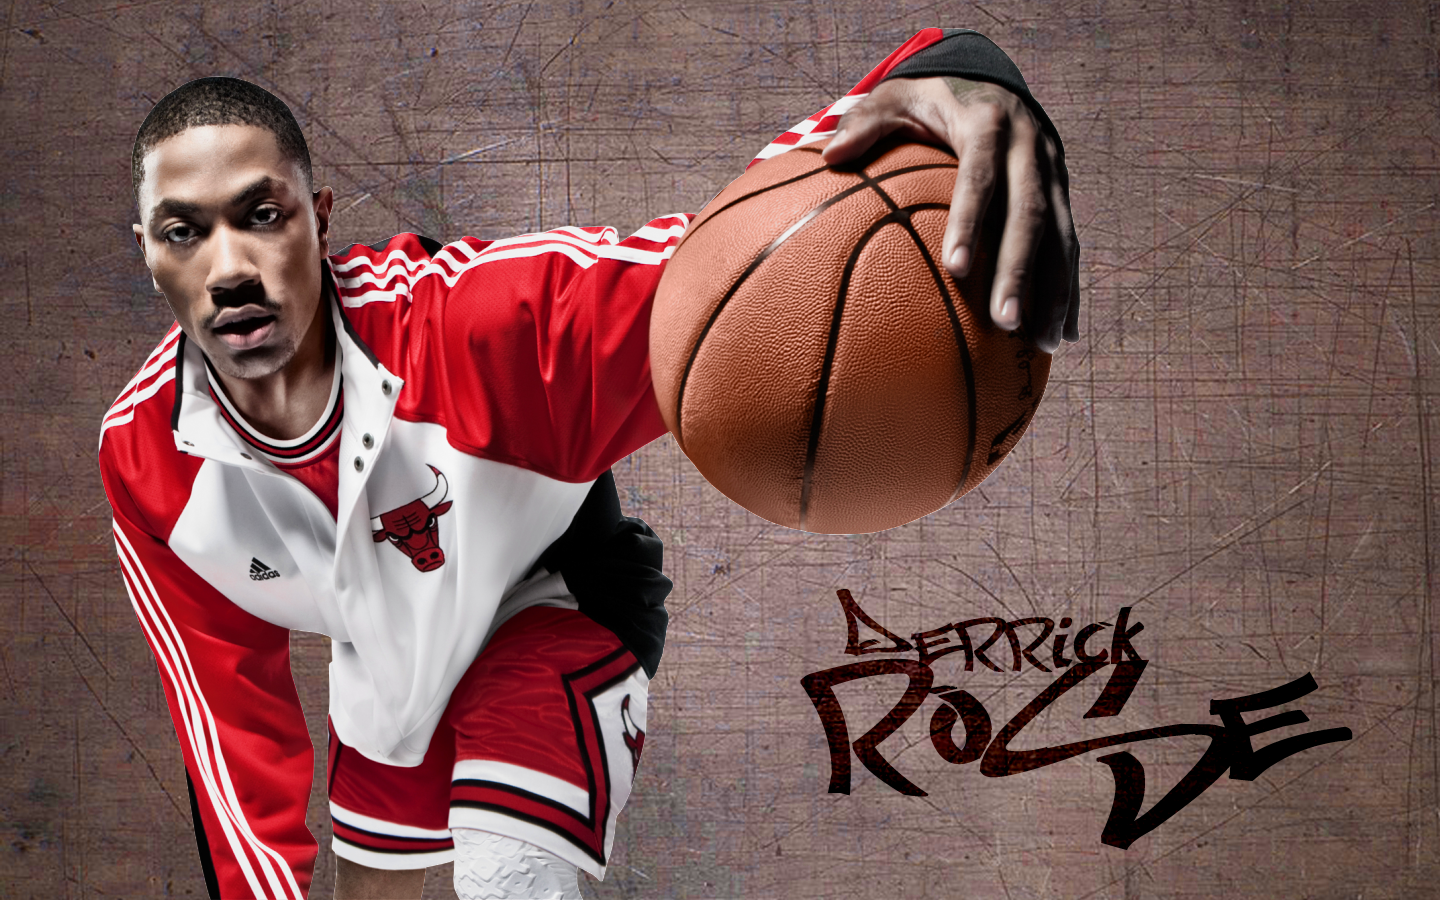 Derrick Rose Wallpaper HD Download For Desktop 1440x900